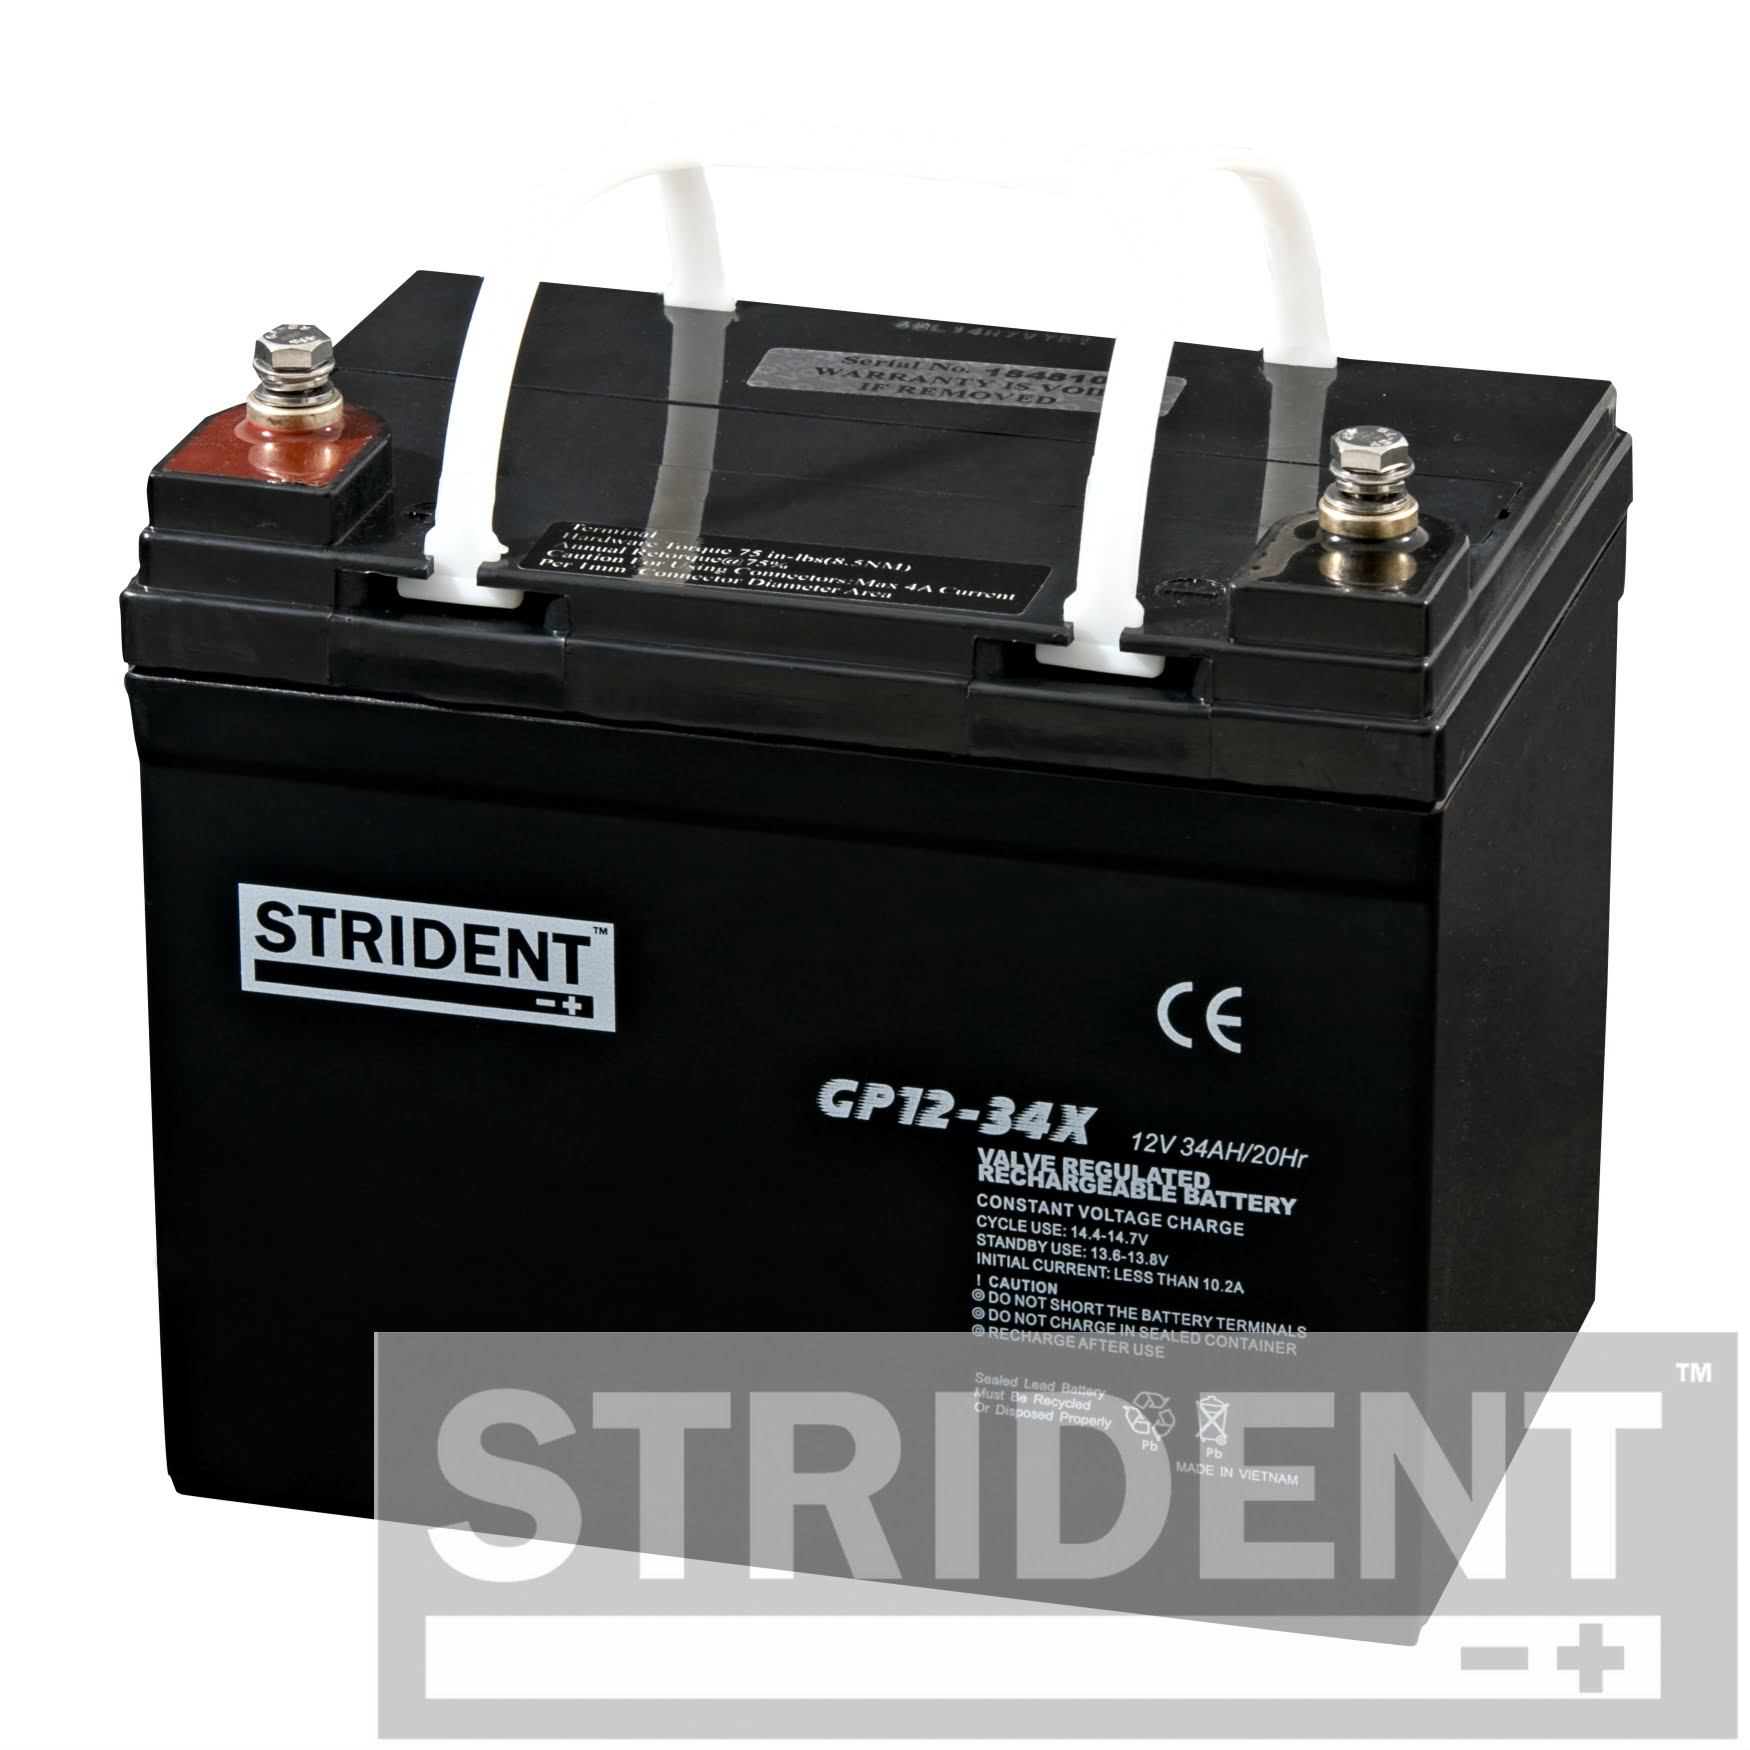 Strident™ GP12-34 Mobility Scooter Battery